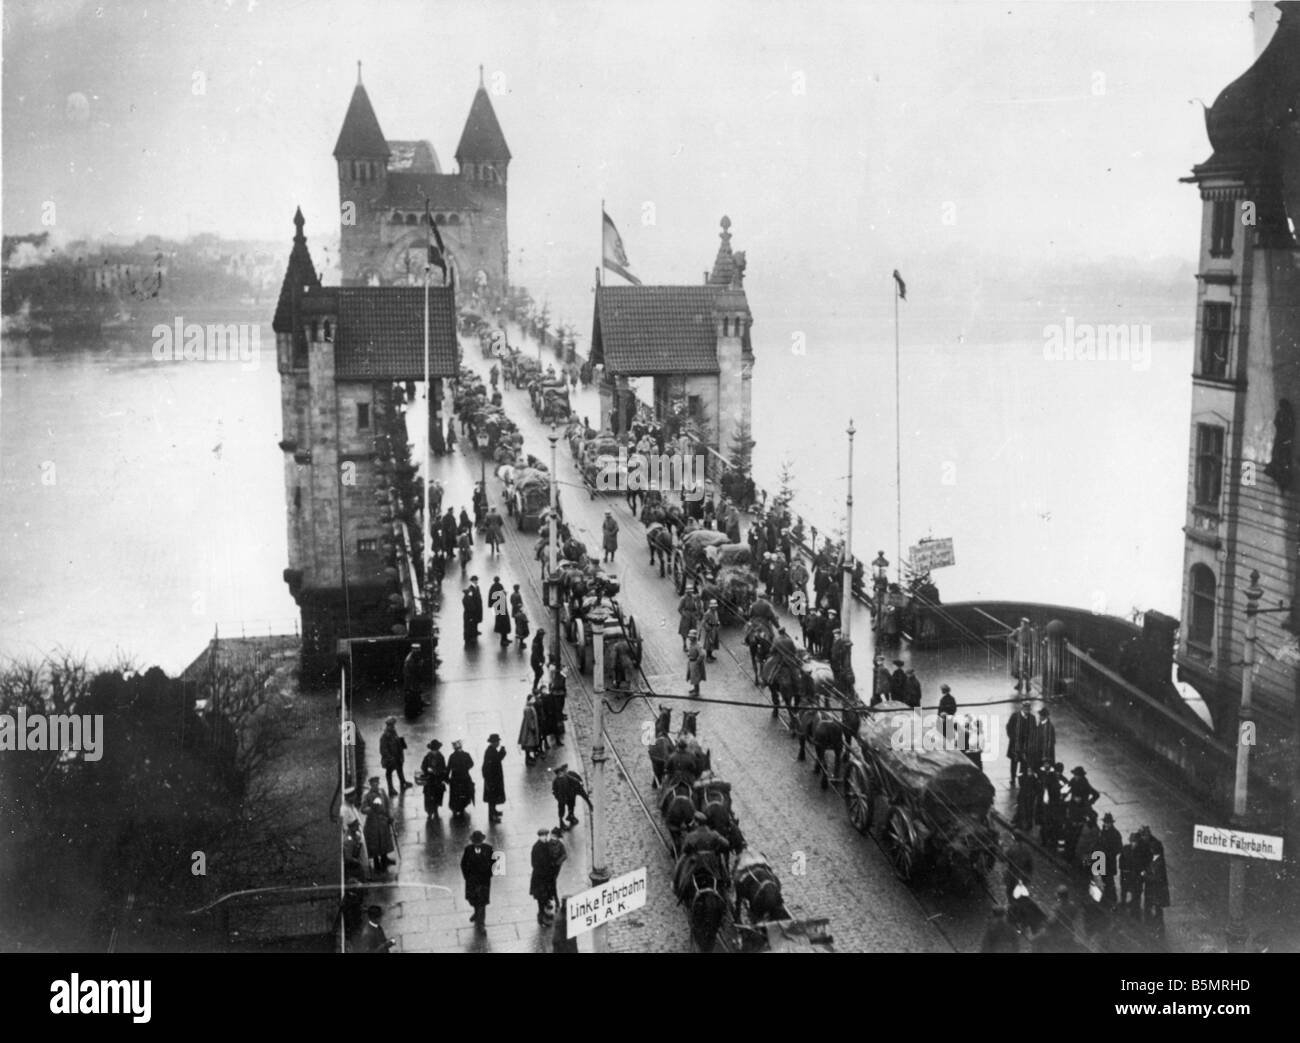 9 1918 11 0 A4 WW1 End of War Return of troops 1918 World War 1 End of War Return of German troops to their positions - Stock Image